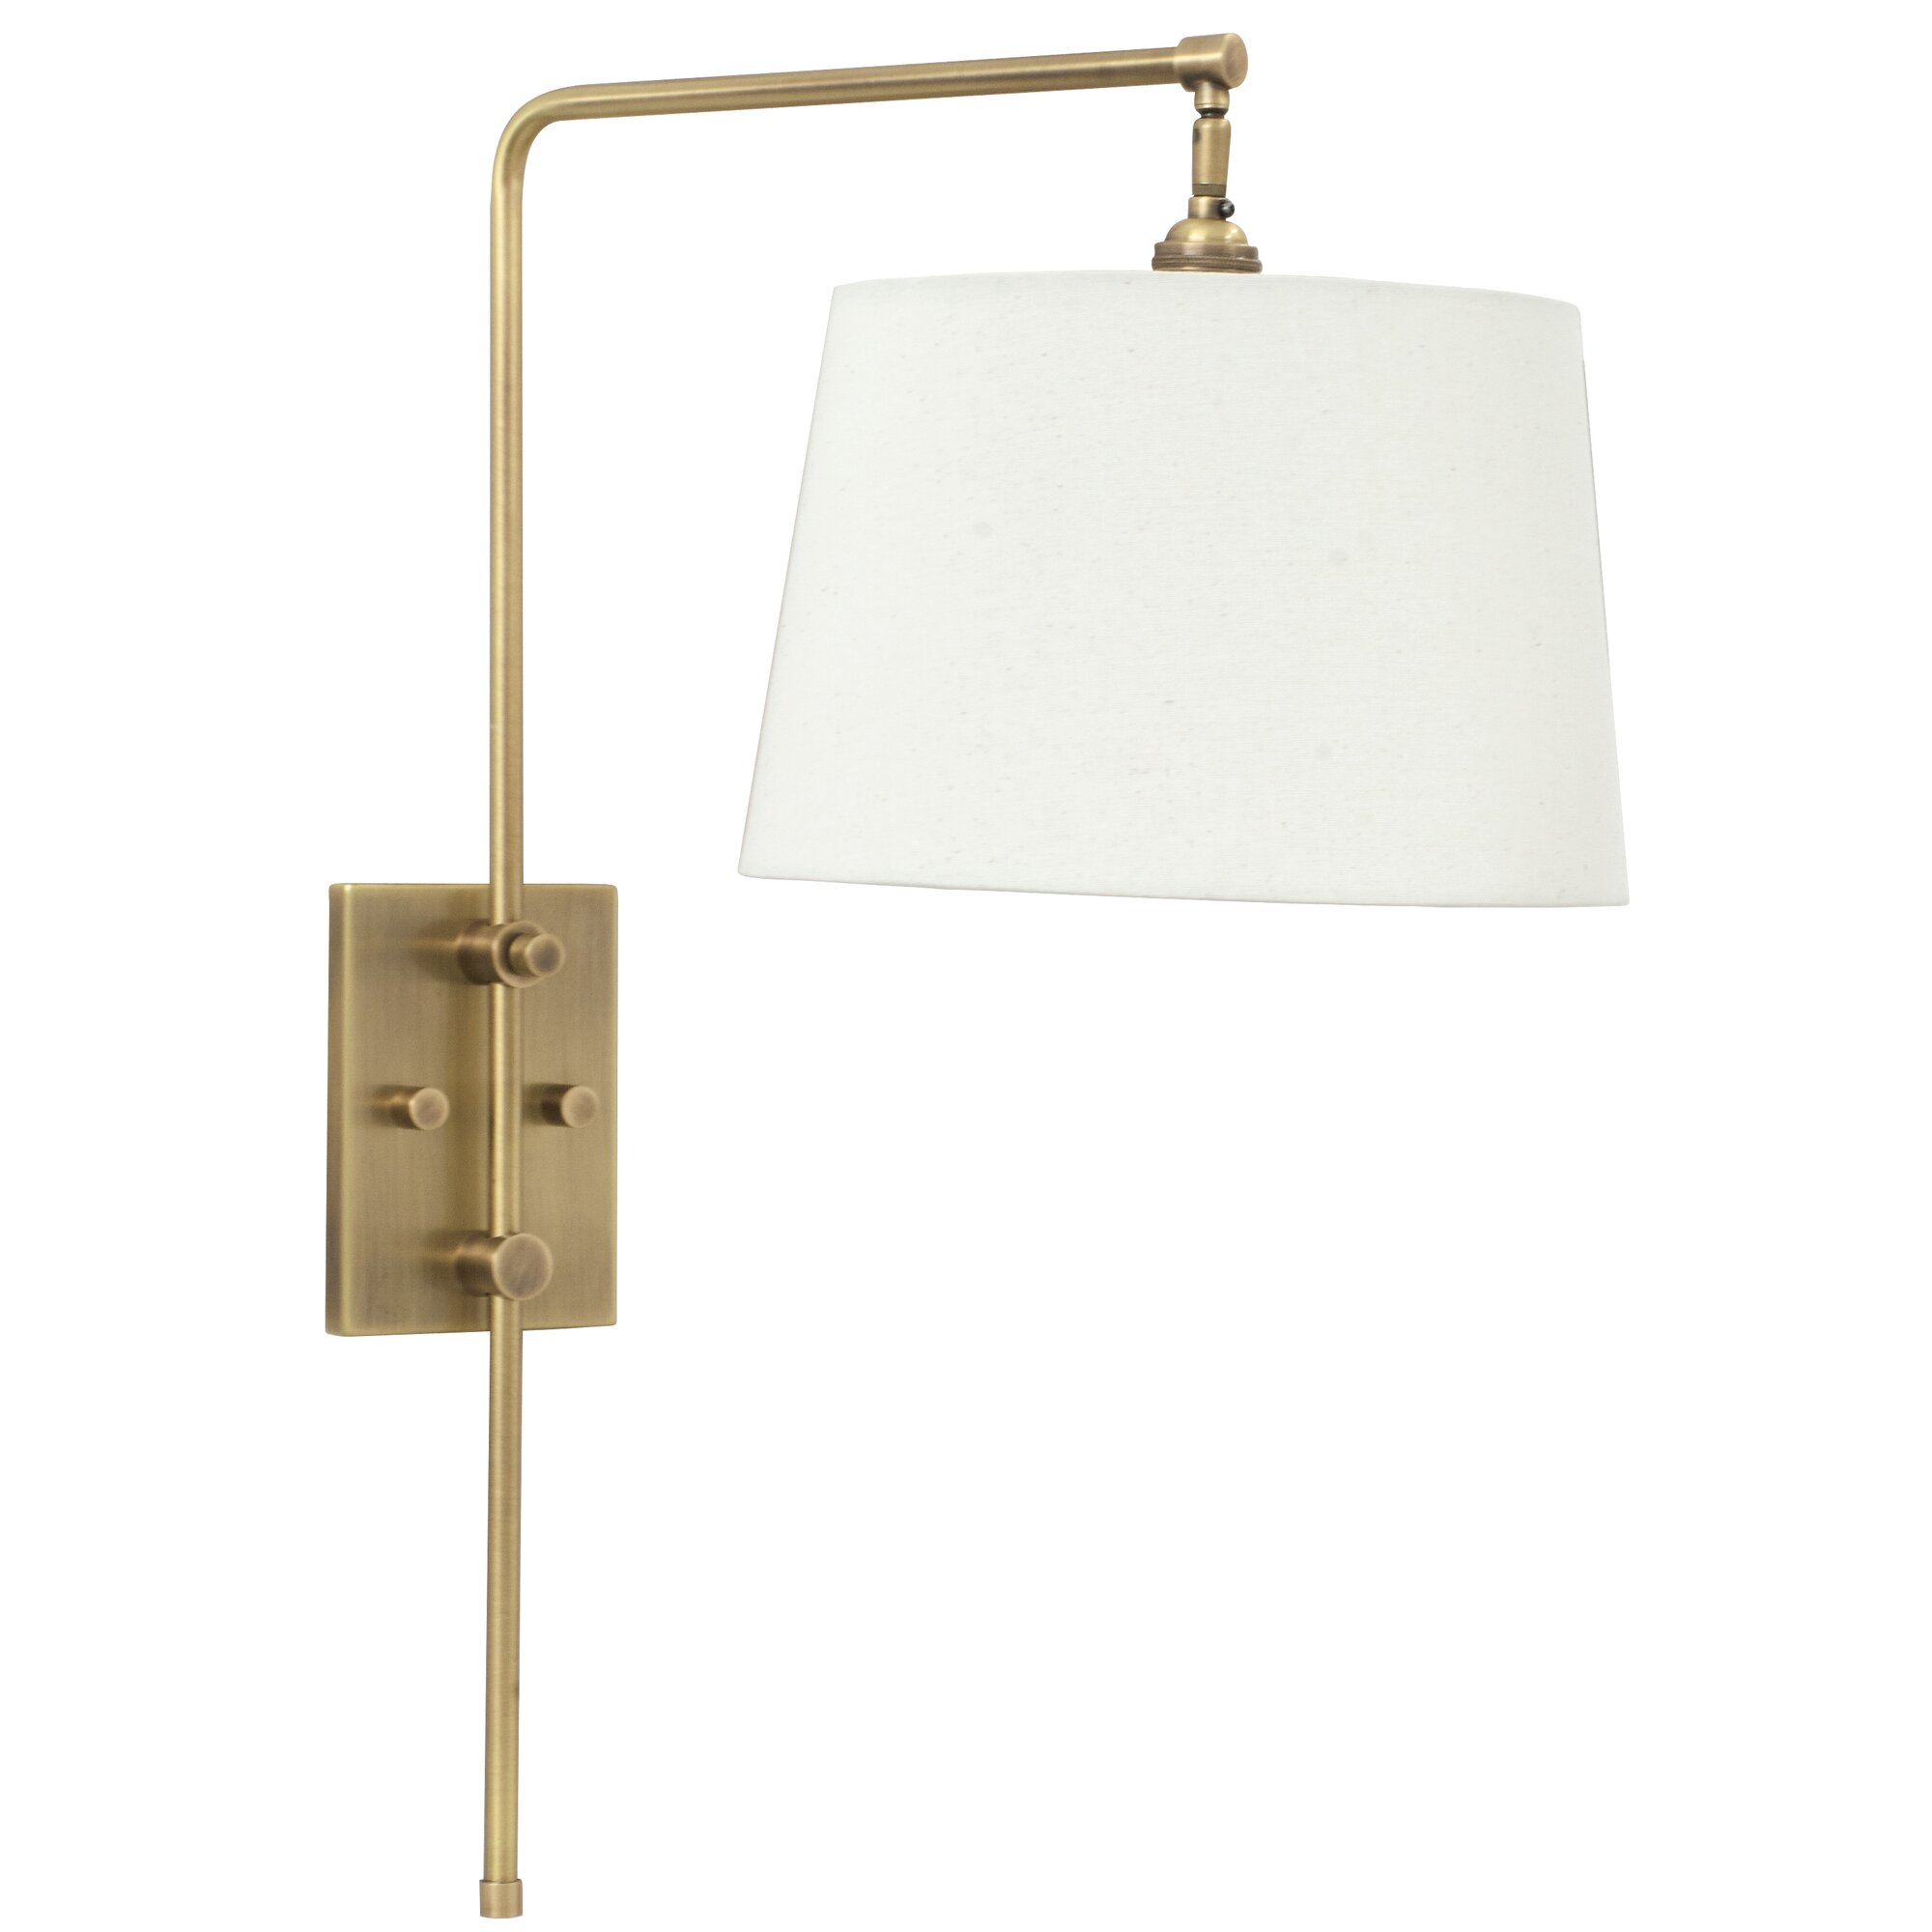 bridge 3 light swing arm - Bedroom Swing Arm Wall Sconces